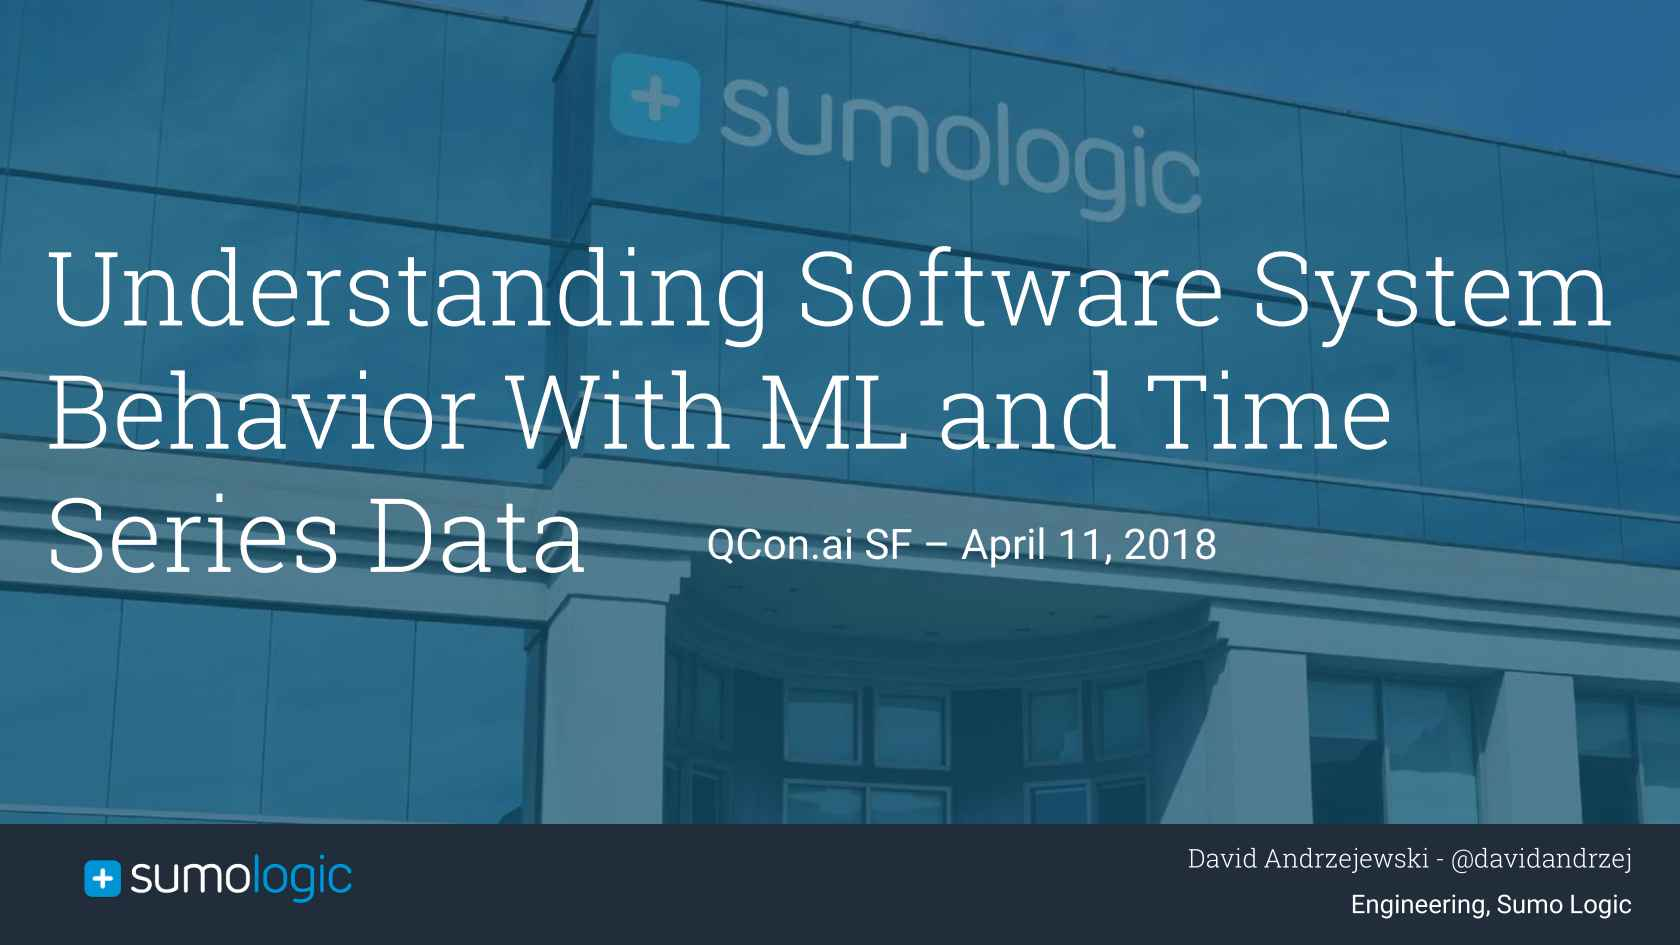 Understanding Software System Behavior with ML and Time Series Data